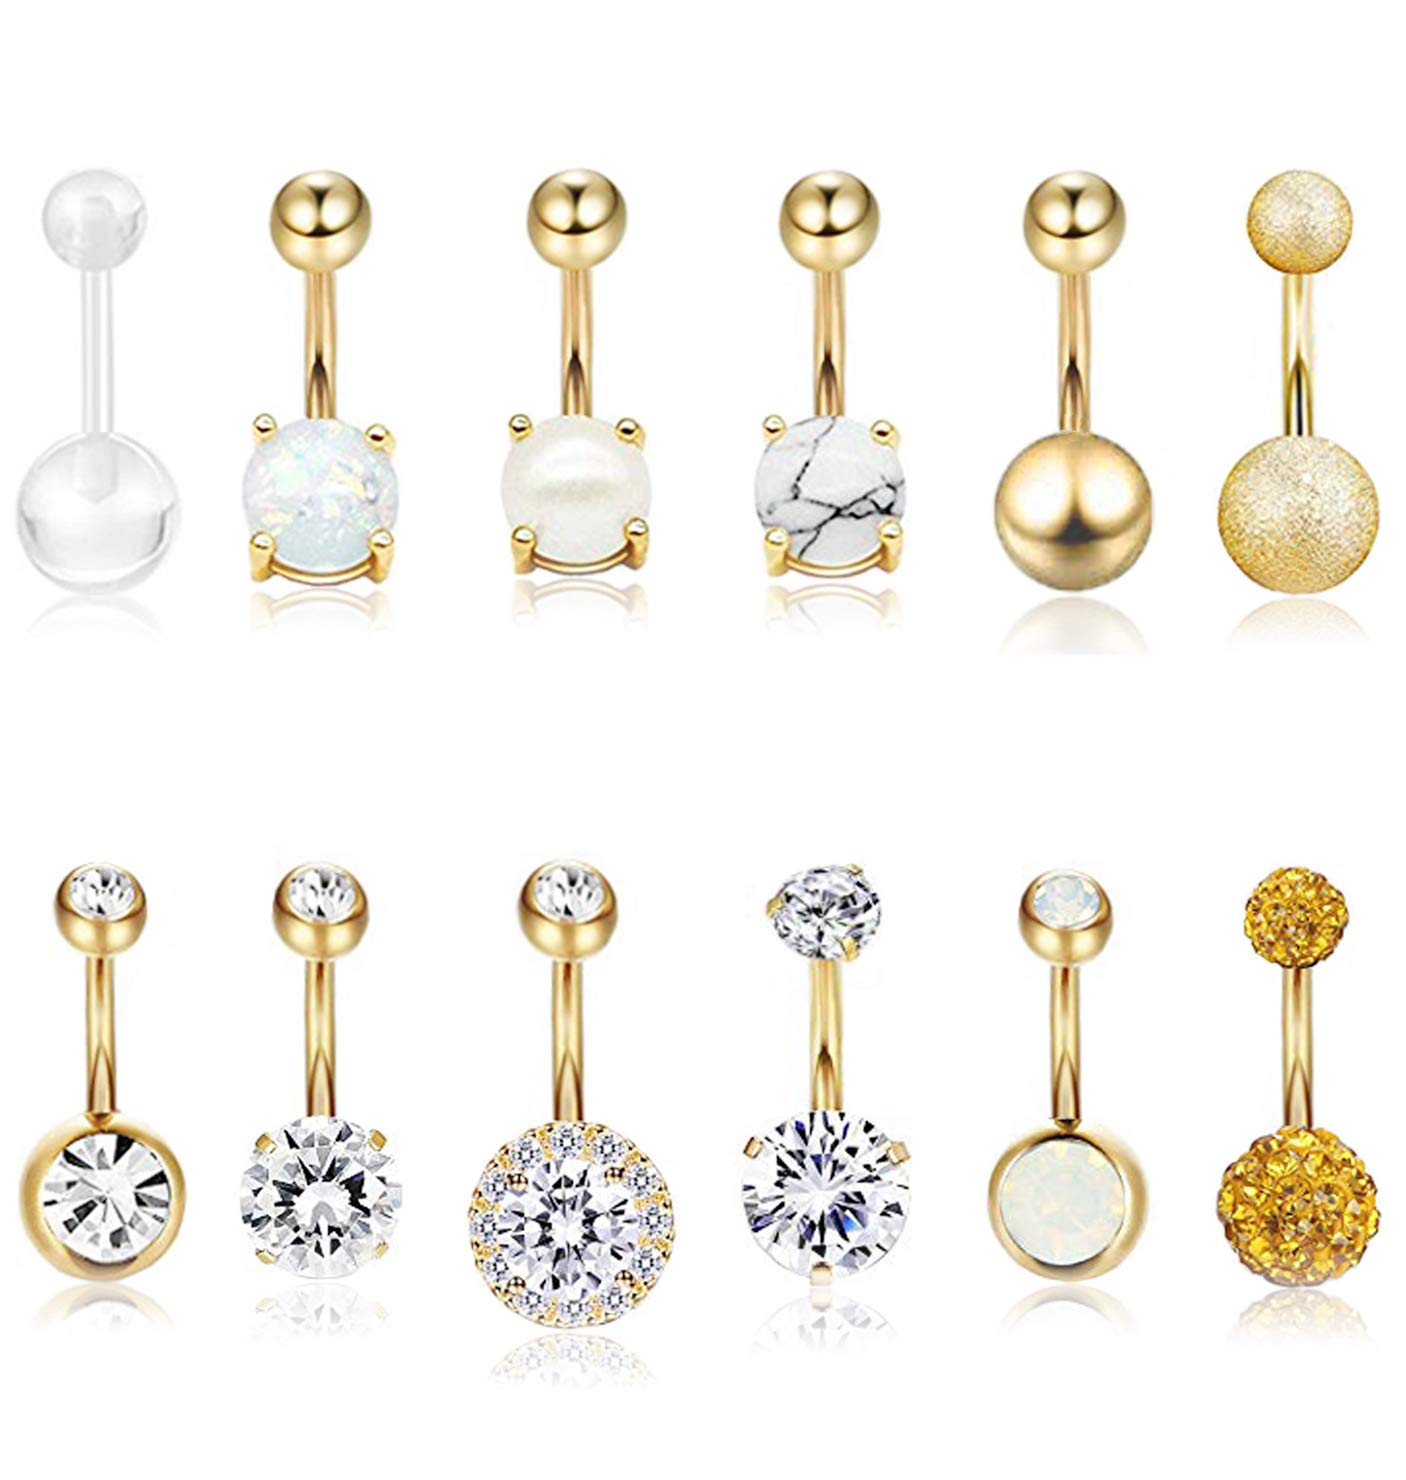 Masedy 12Pcs Belly Button Rings for Women Girls Surgical Steel Curved Navel Barbell Rings Body Piercing Jewelry Gold by Masedy